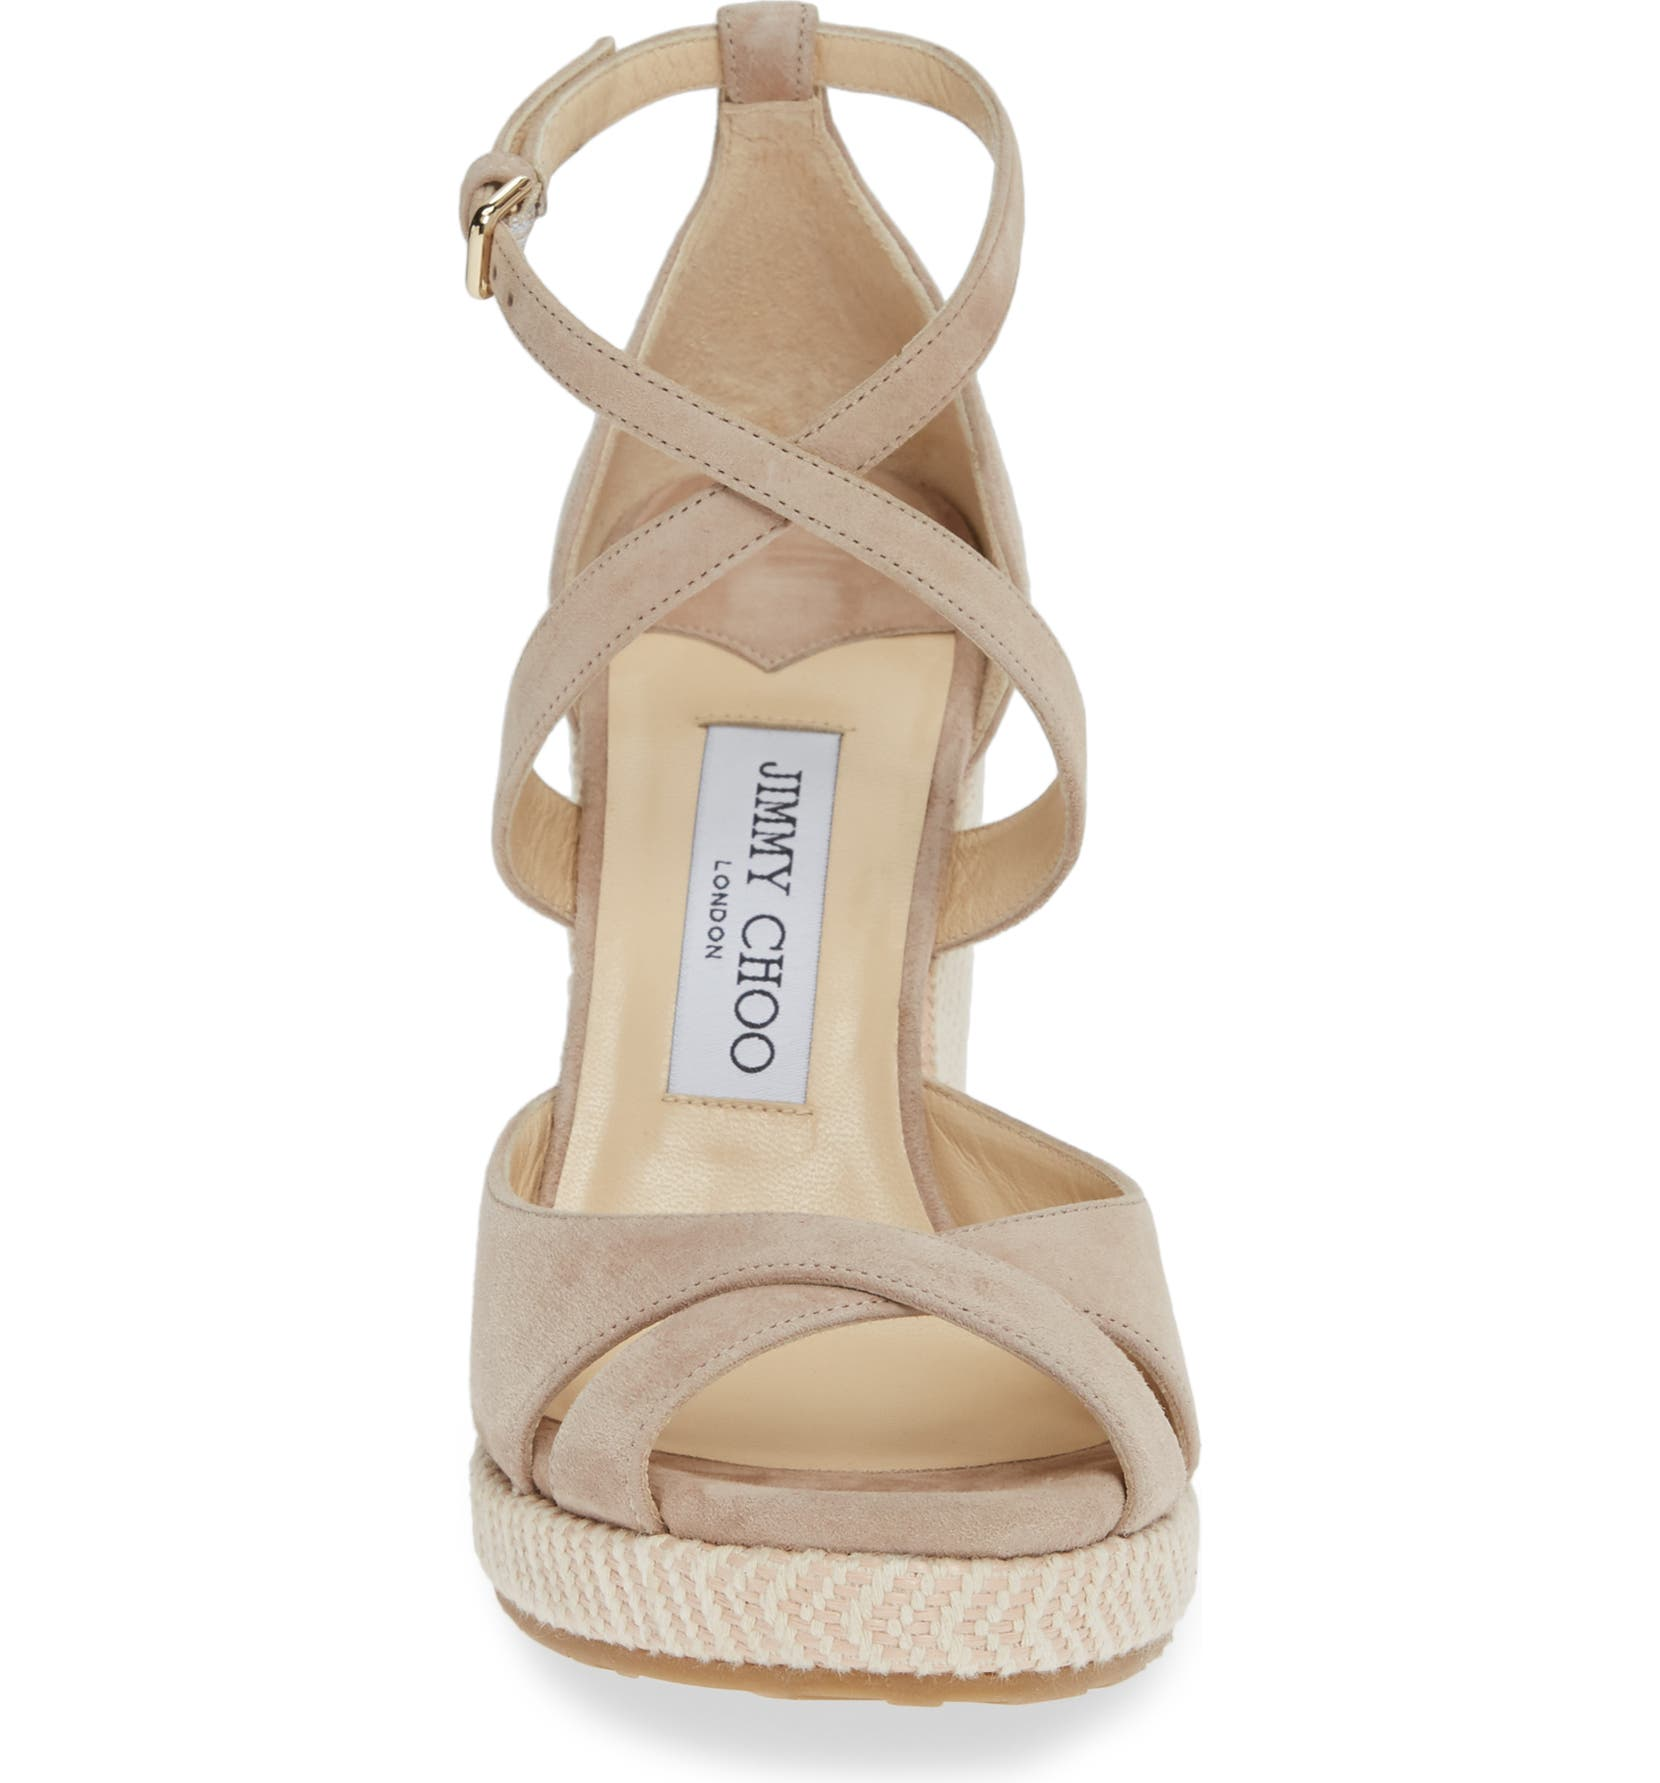 cfe22845bf47 Jimmy Choo Alanah Strappy Wedge Sandal (Women)